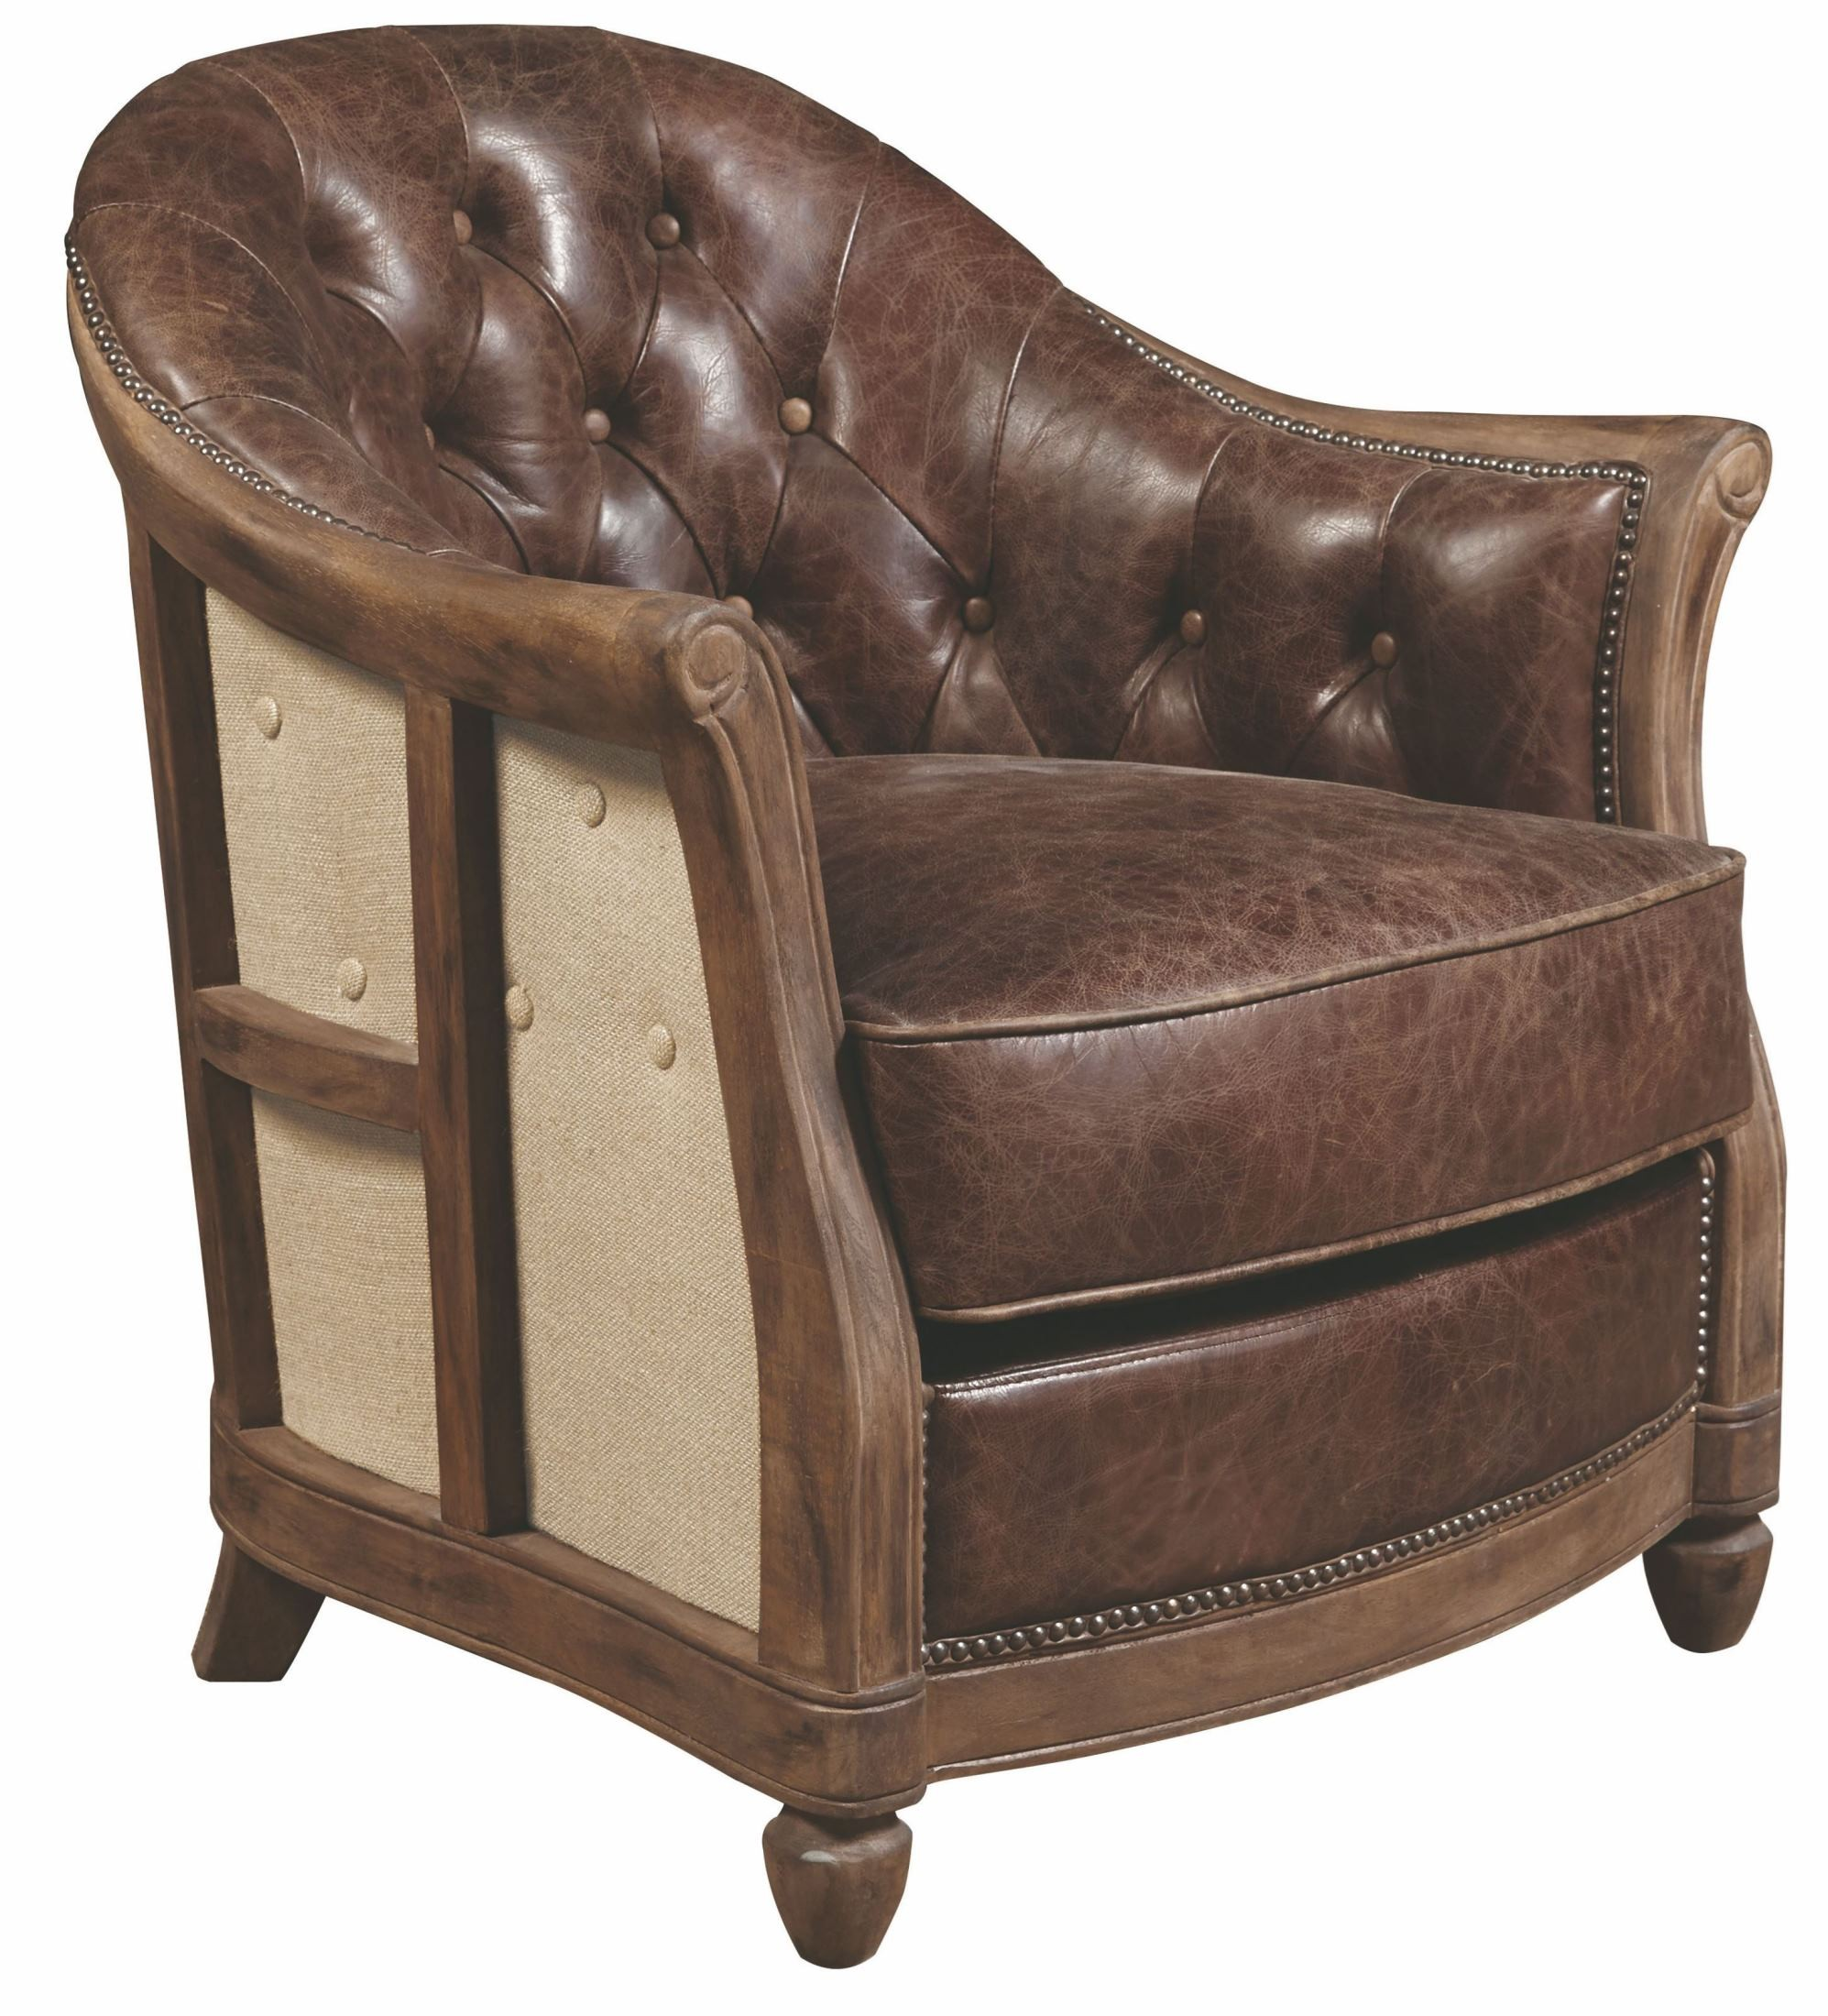 Andrew Brown Leather Accent Chair from Pulaski  Coleman